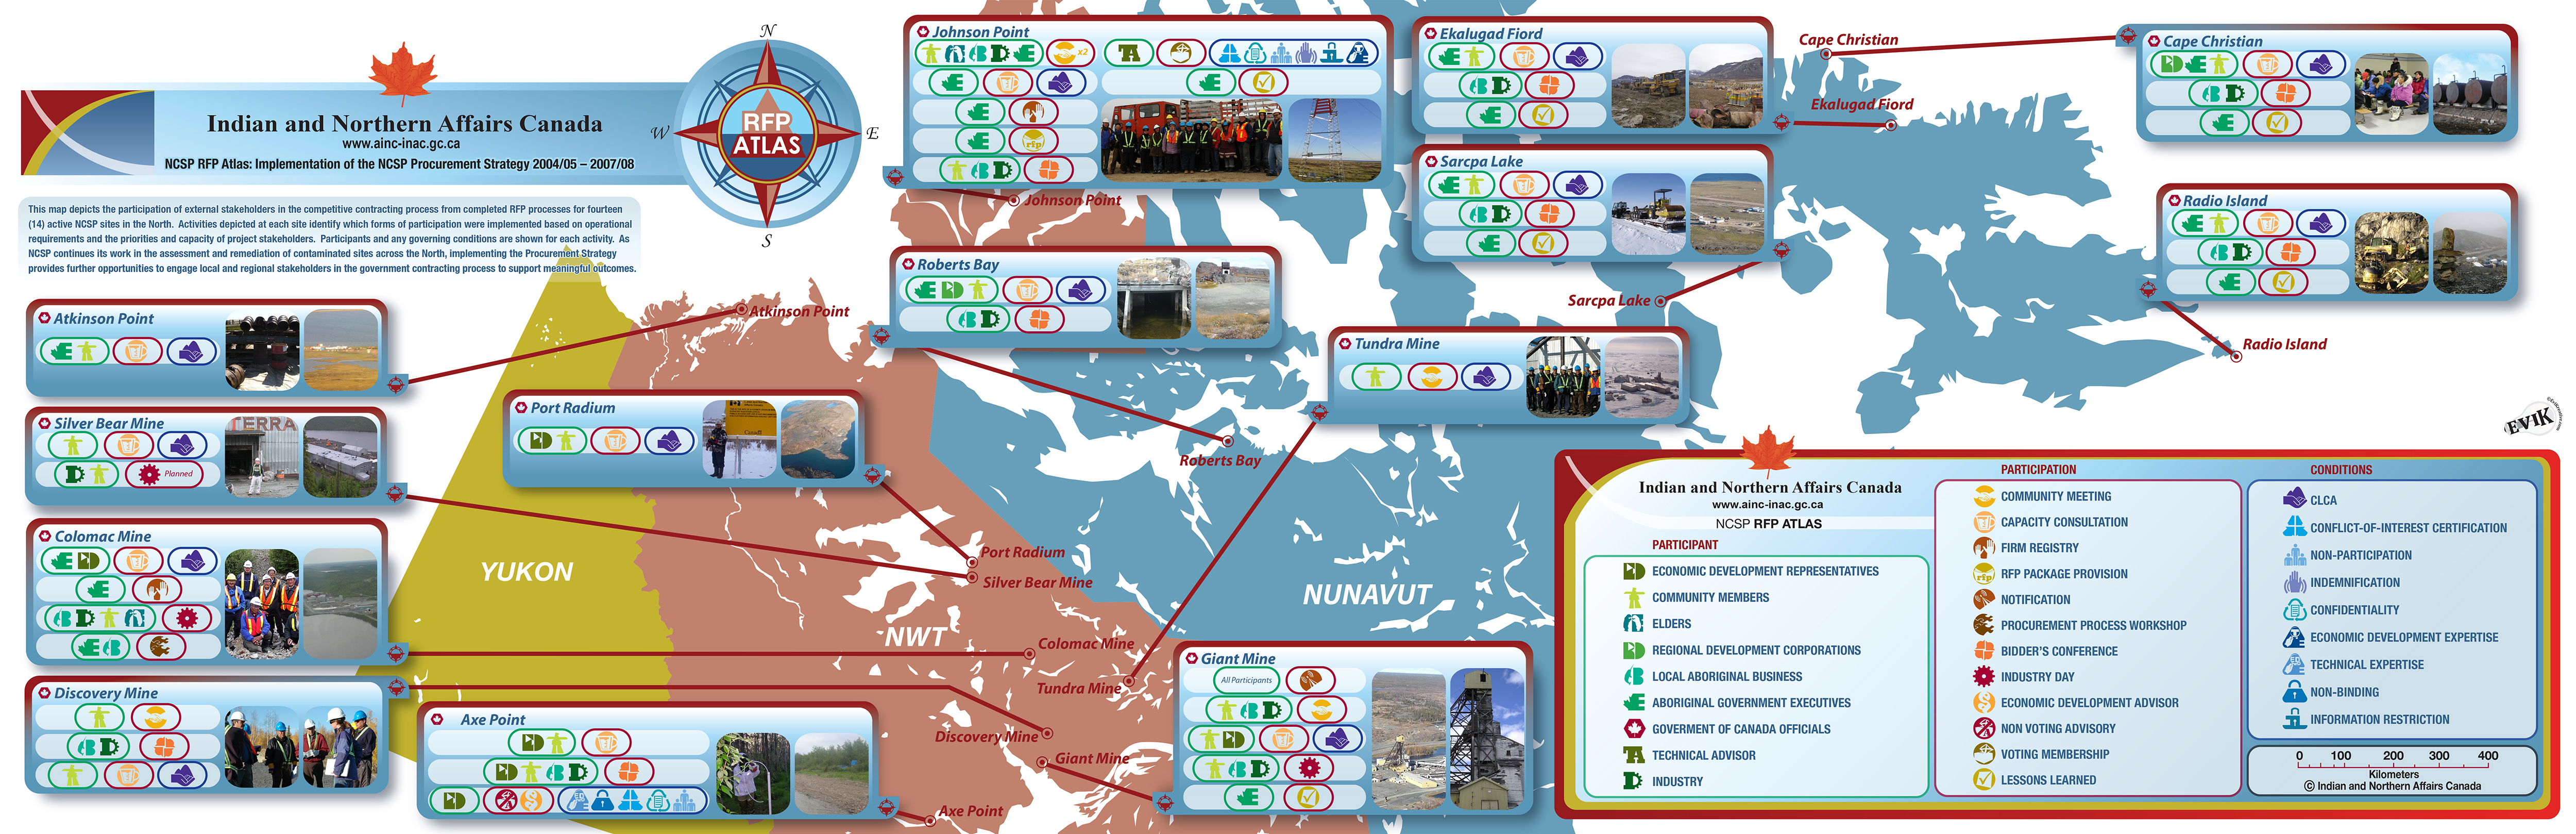 Evikreative Inac Ncsp Rfp Atlas Graphic